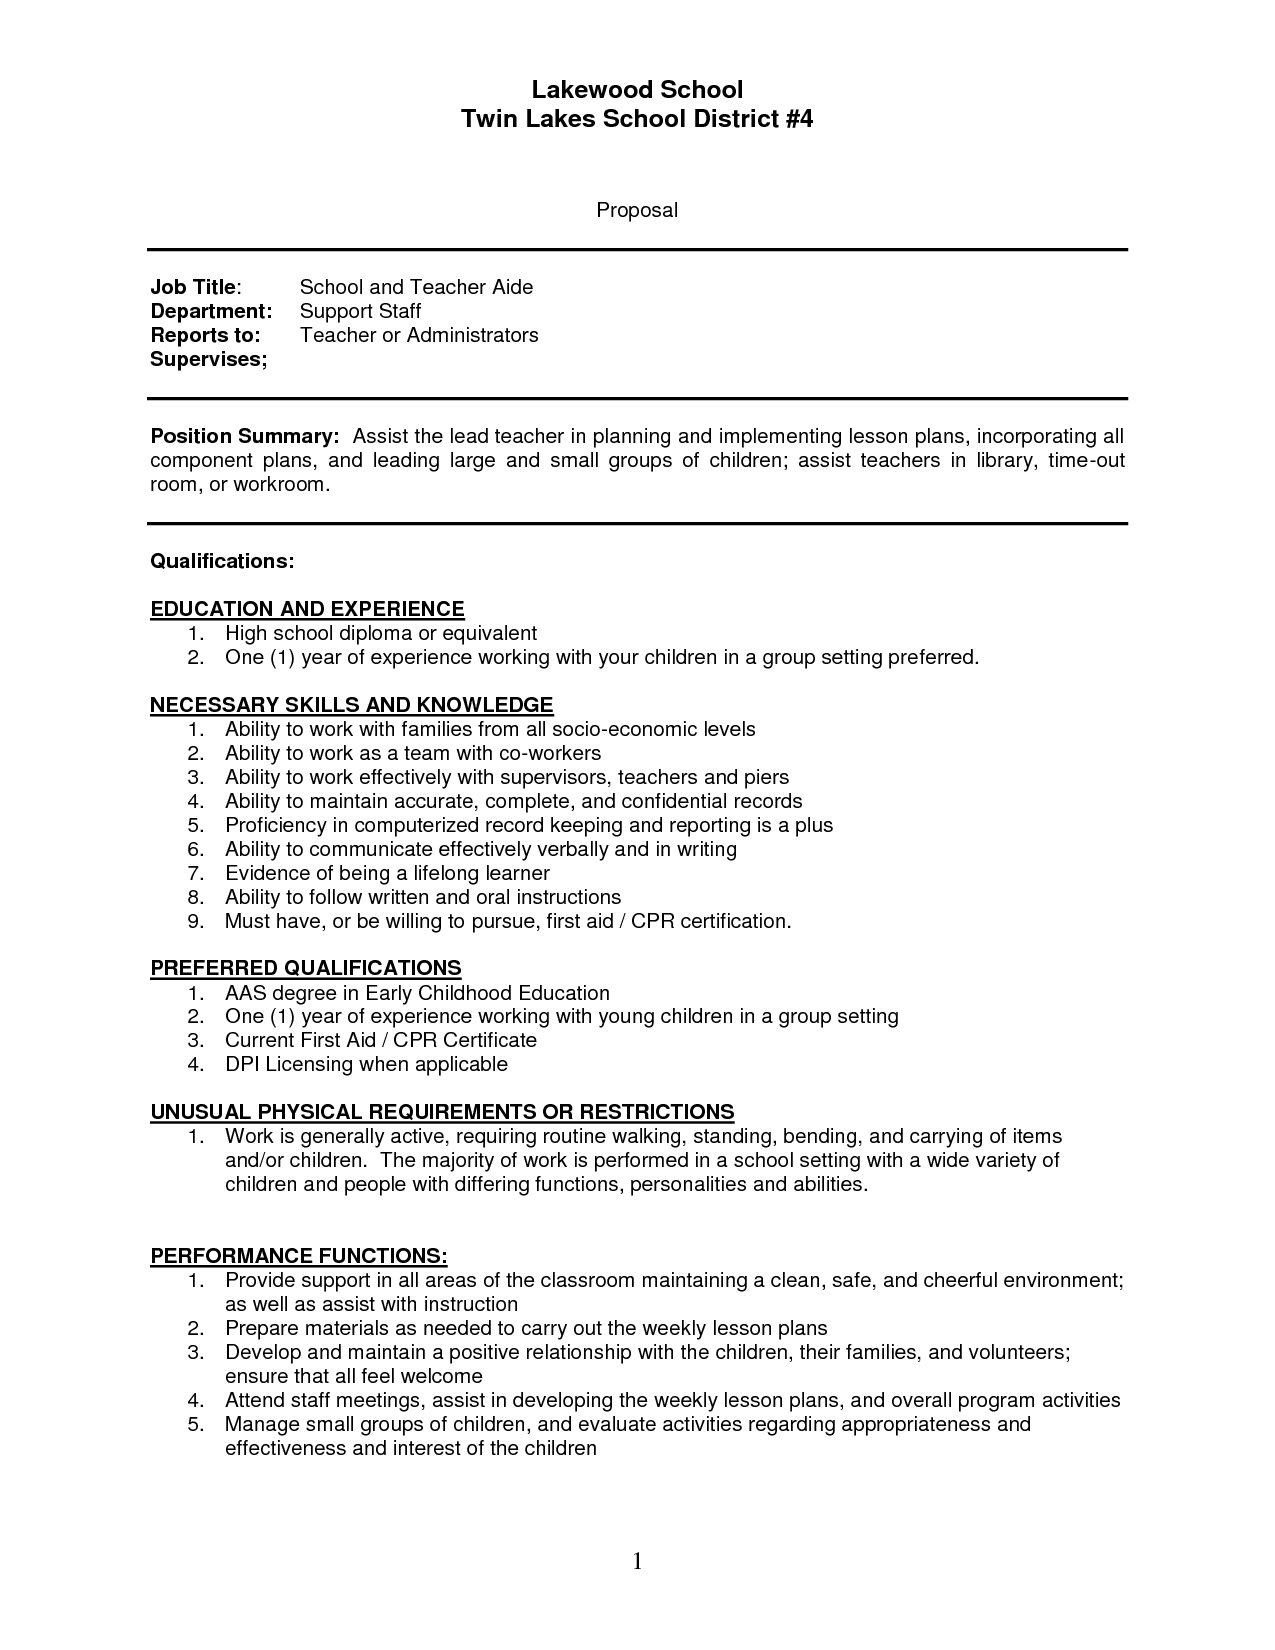 teacher assistant sample resume sample resume of teachers aides resume for teacher - Teaching Assistant Resume Description